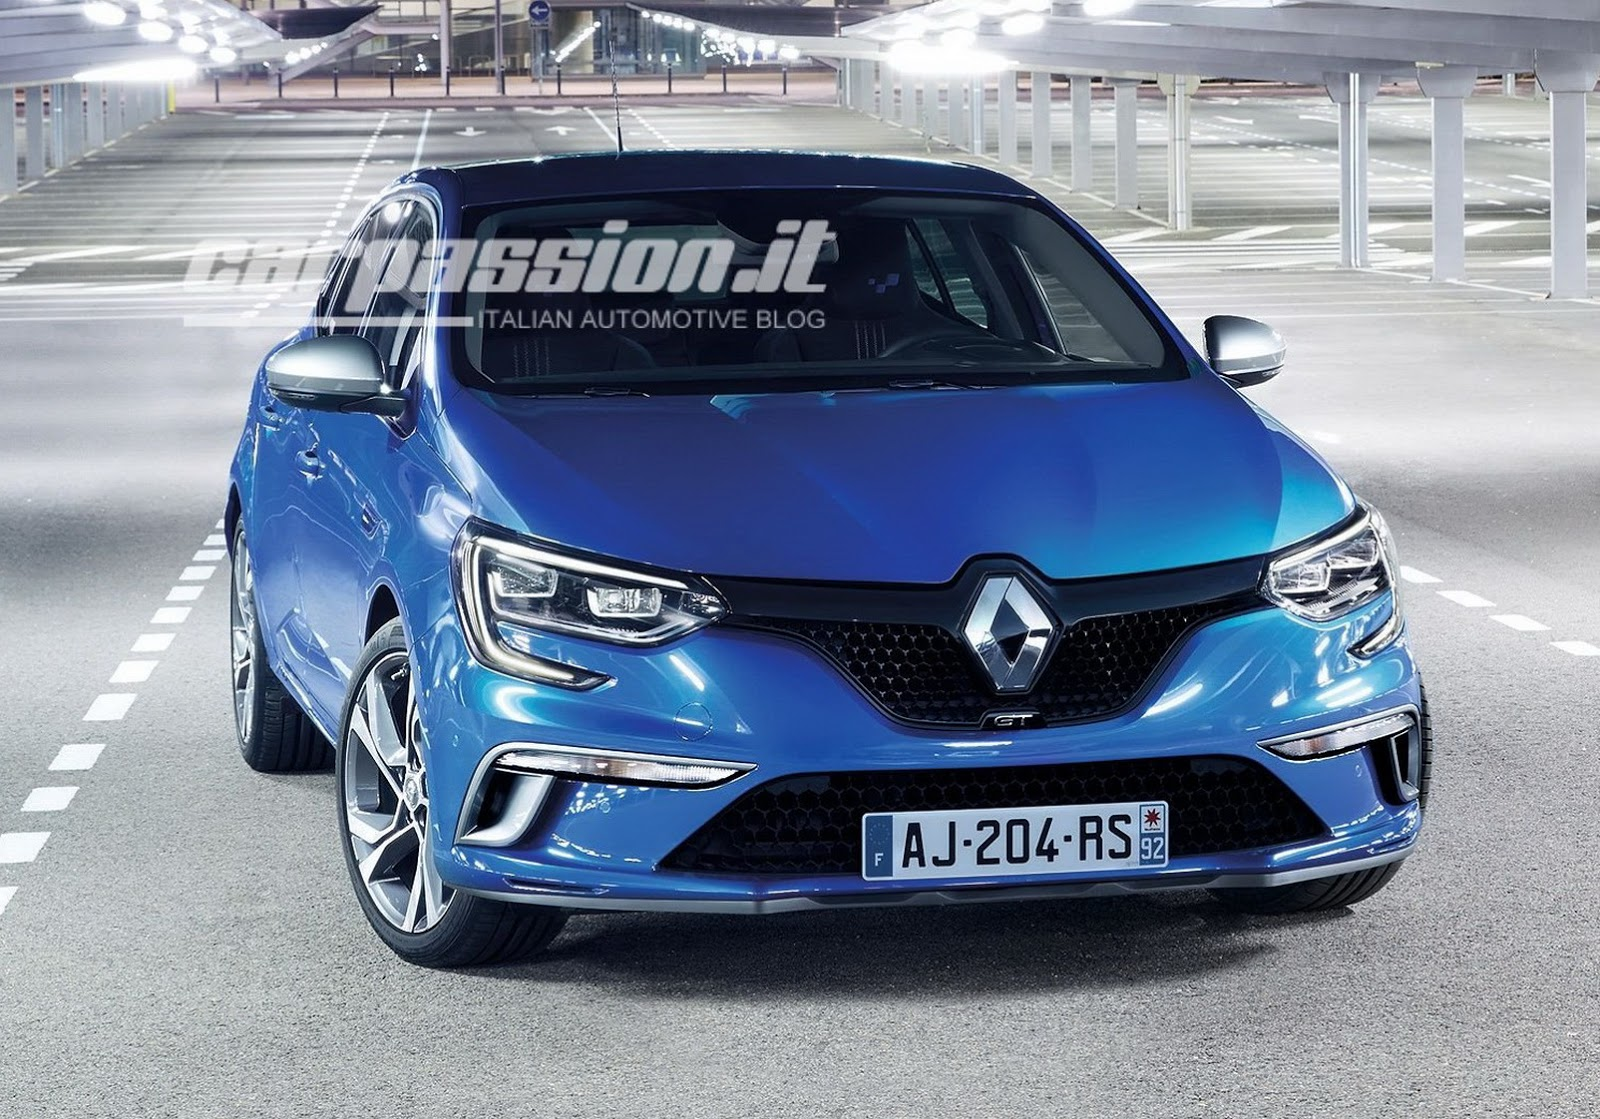 All New 2016 Renault Megane Revealed In Official Photos